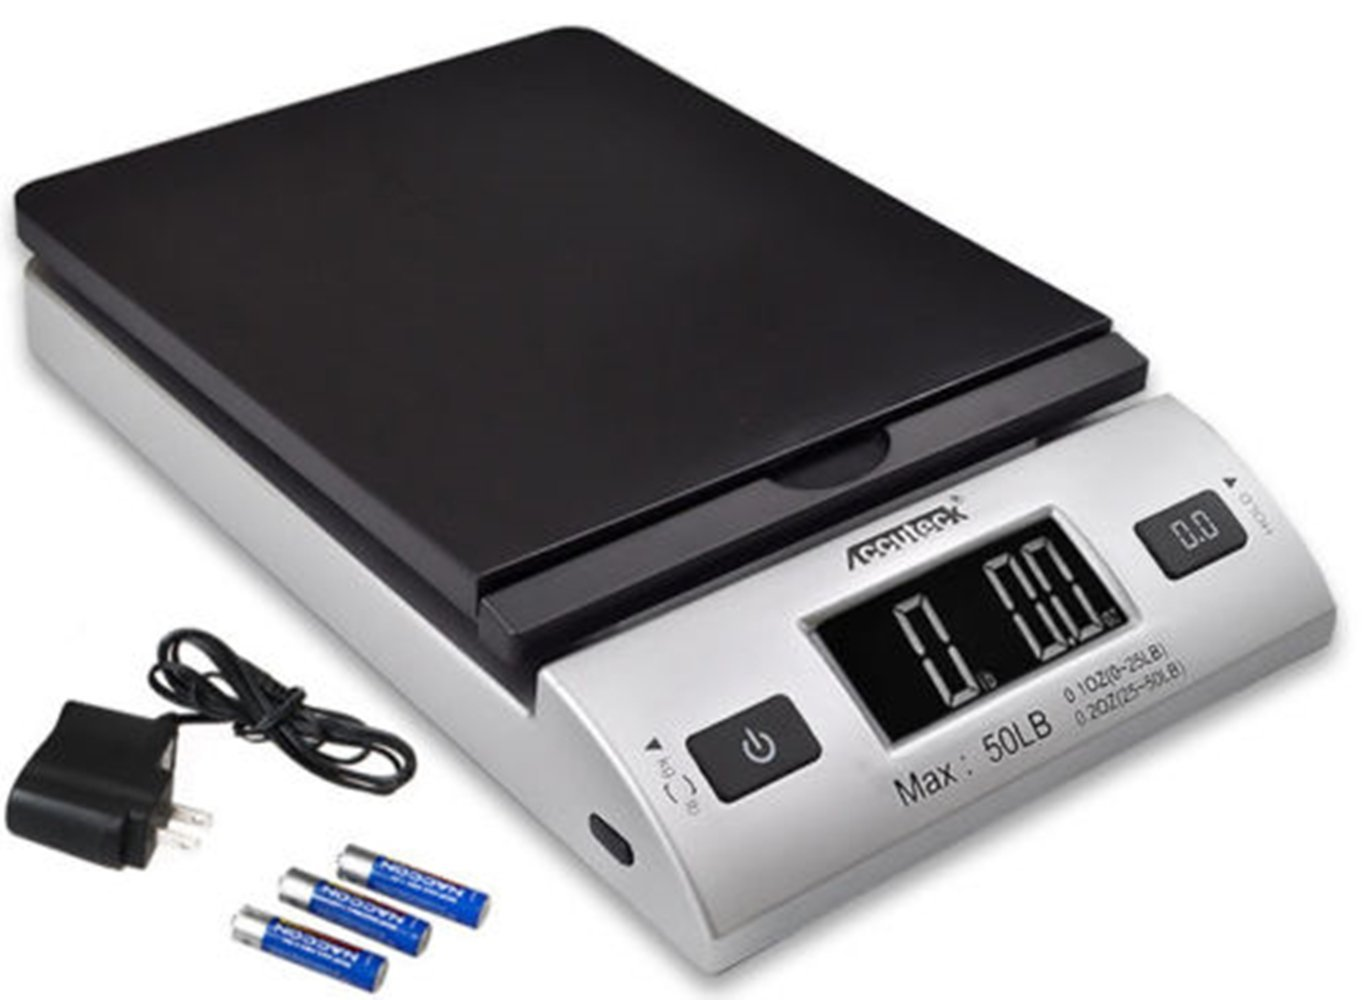 ACCUTECK All-in-1 Series W-8250-50bs A-Pt 50 Digital with Ac Adapter, Silver by ACCUTECK